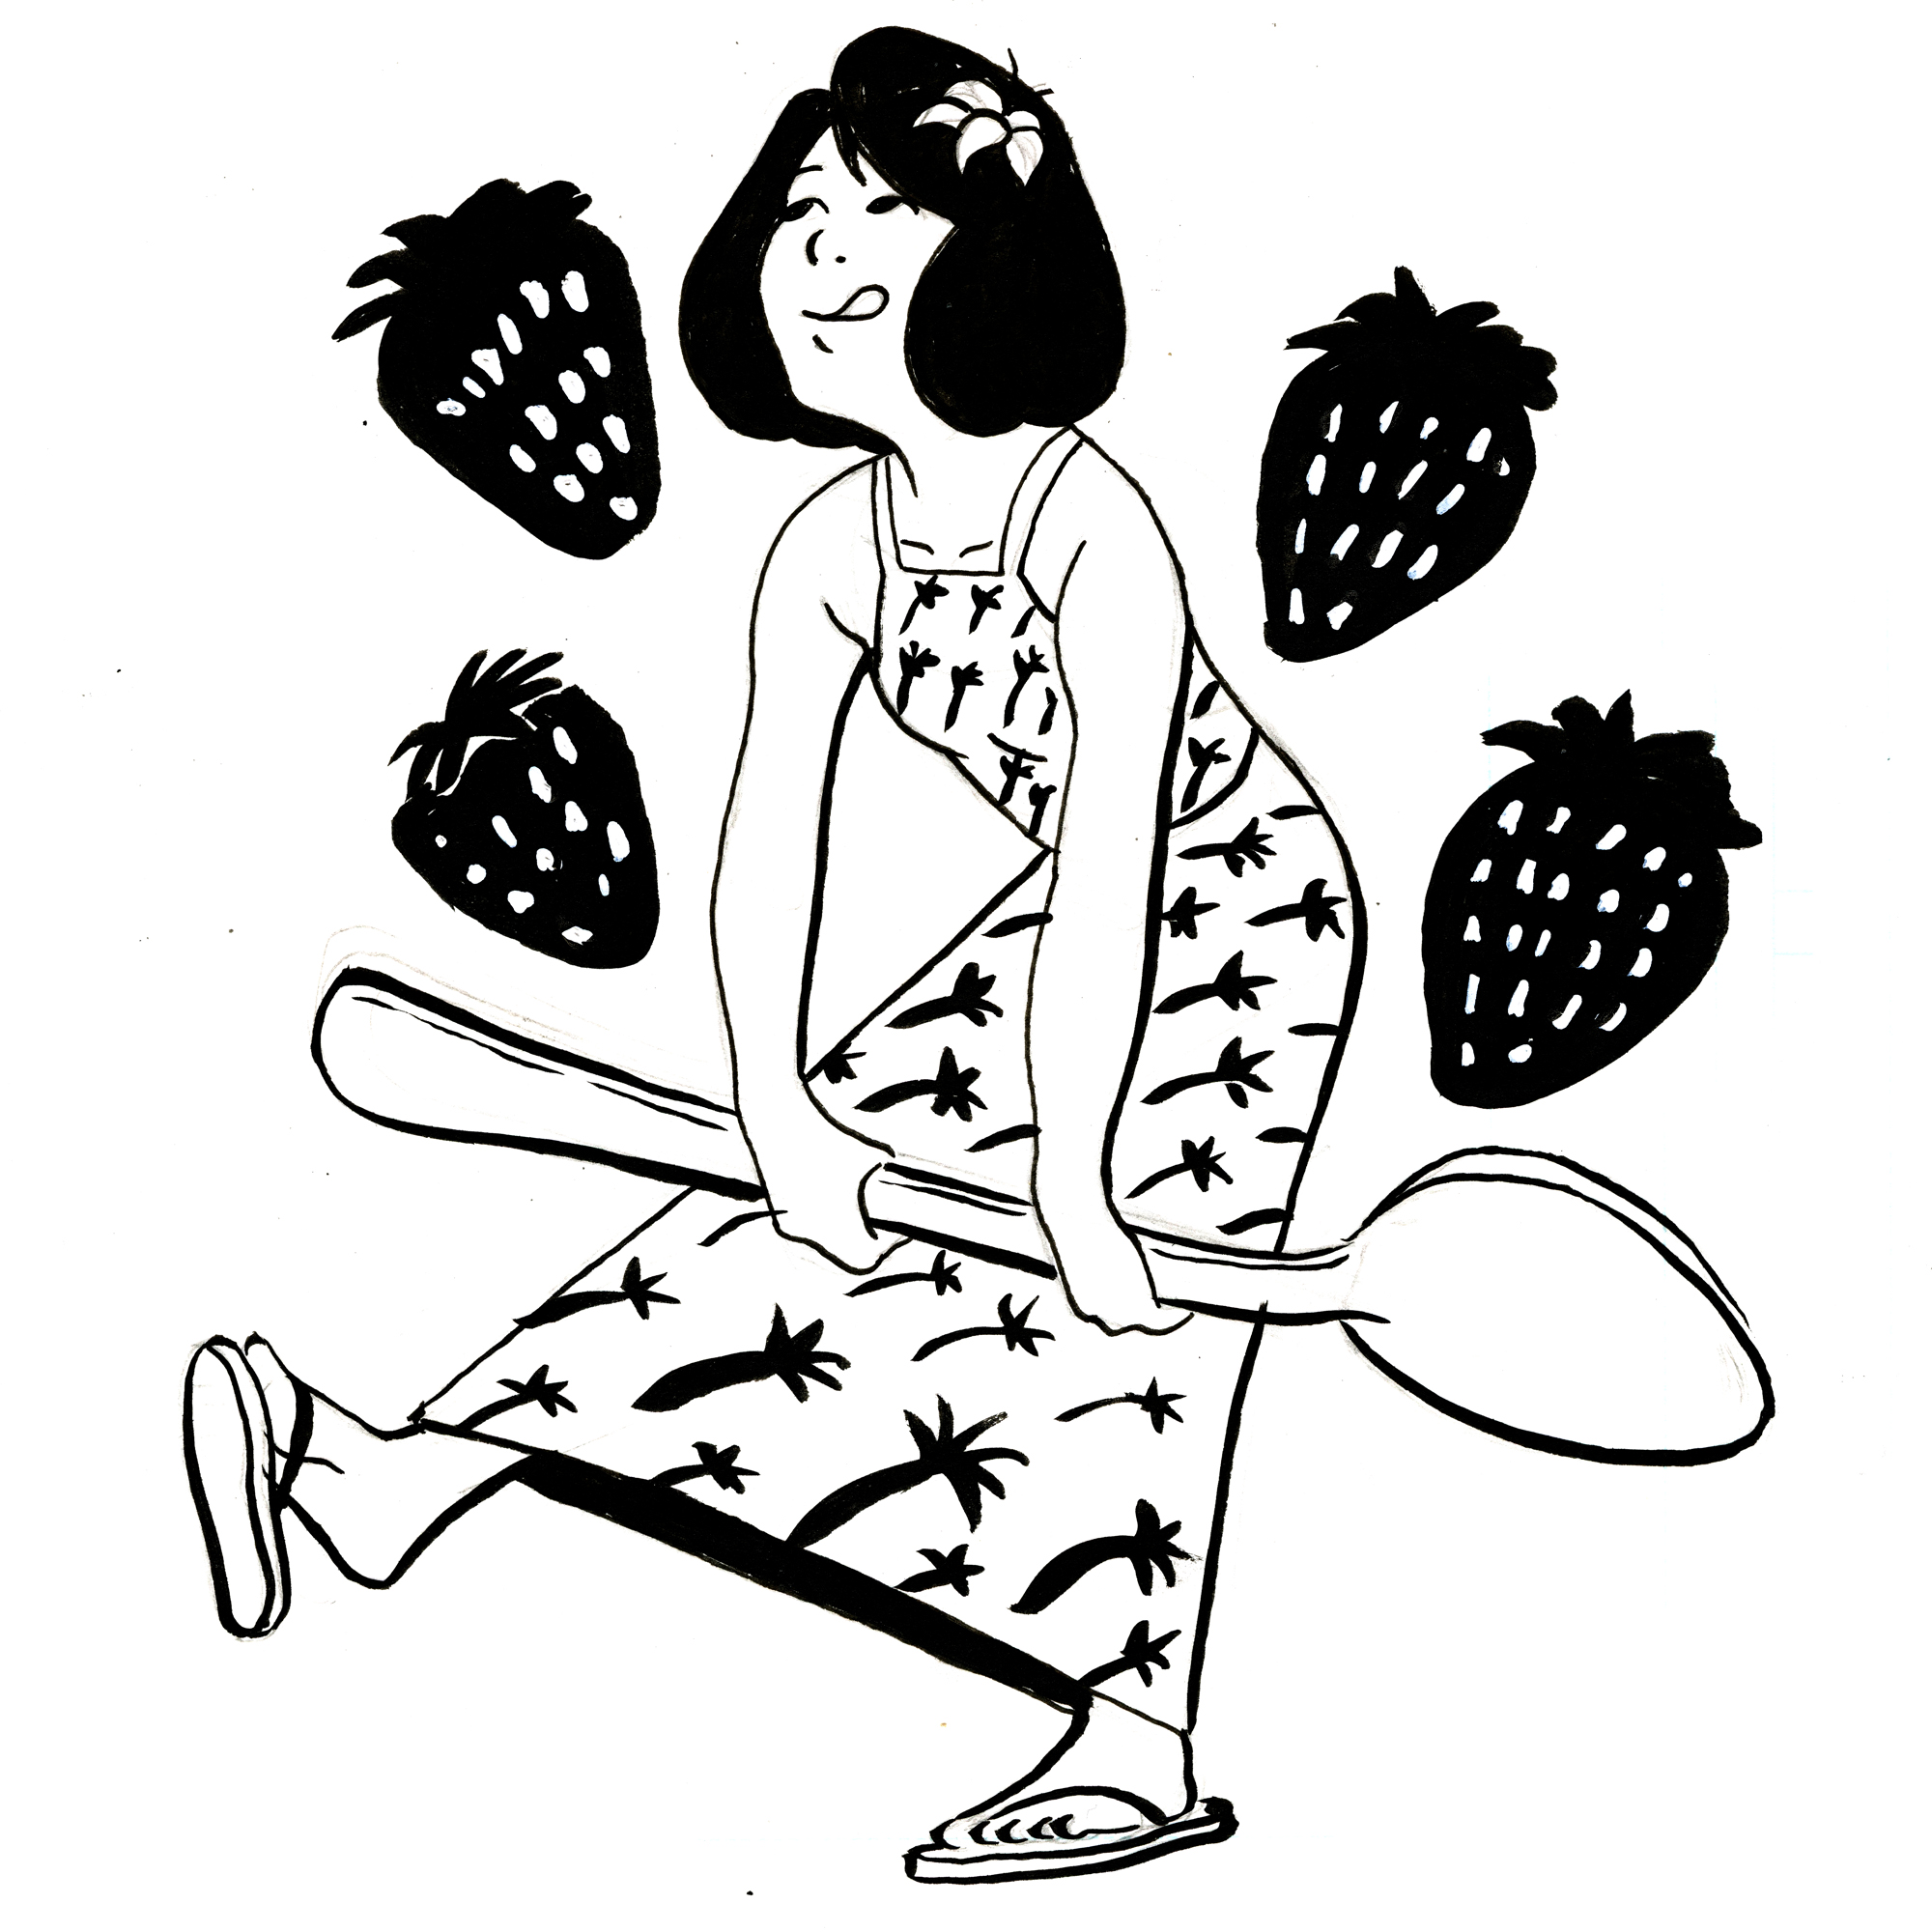 CoverGirl+Strawberries_Illo.jpg